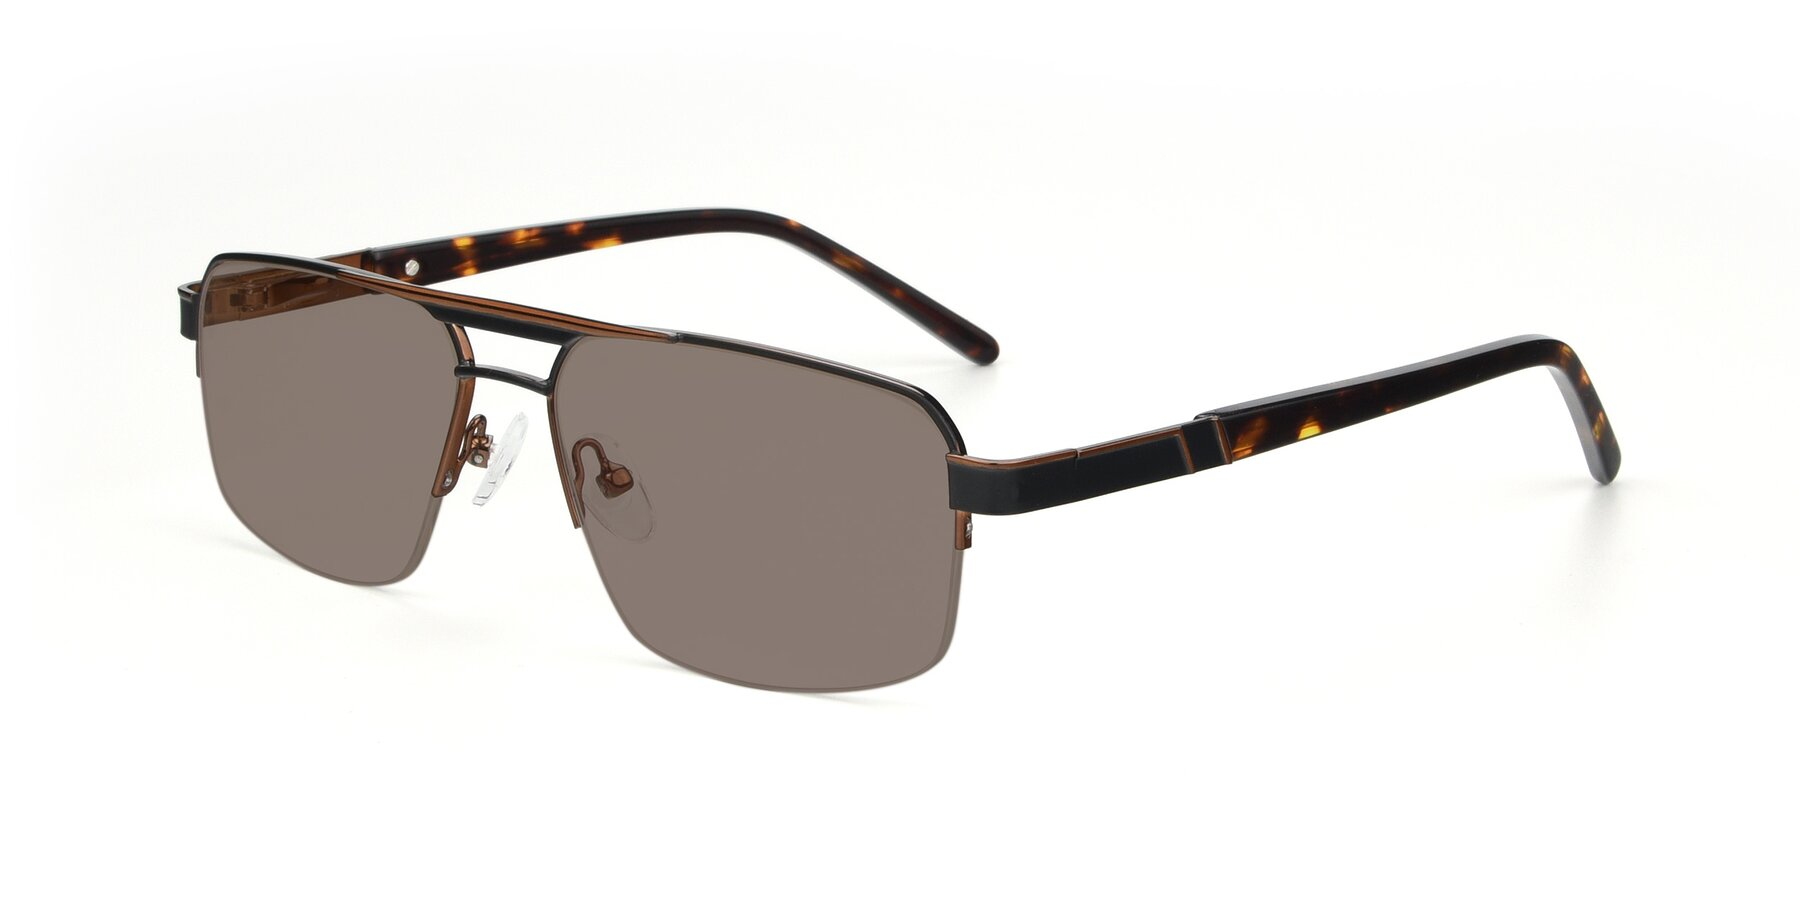 Angle of 19004 in Black-Bronze with Medium Brown Tinted Lenses